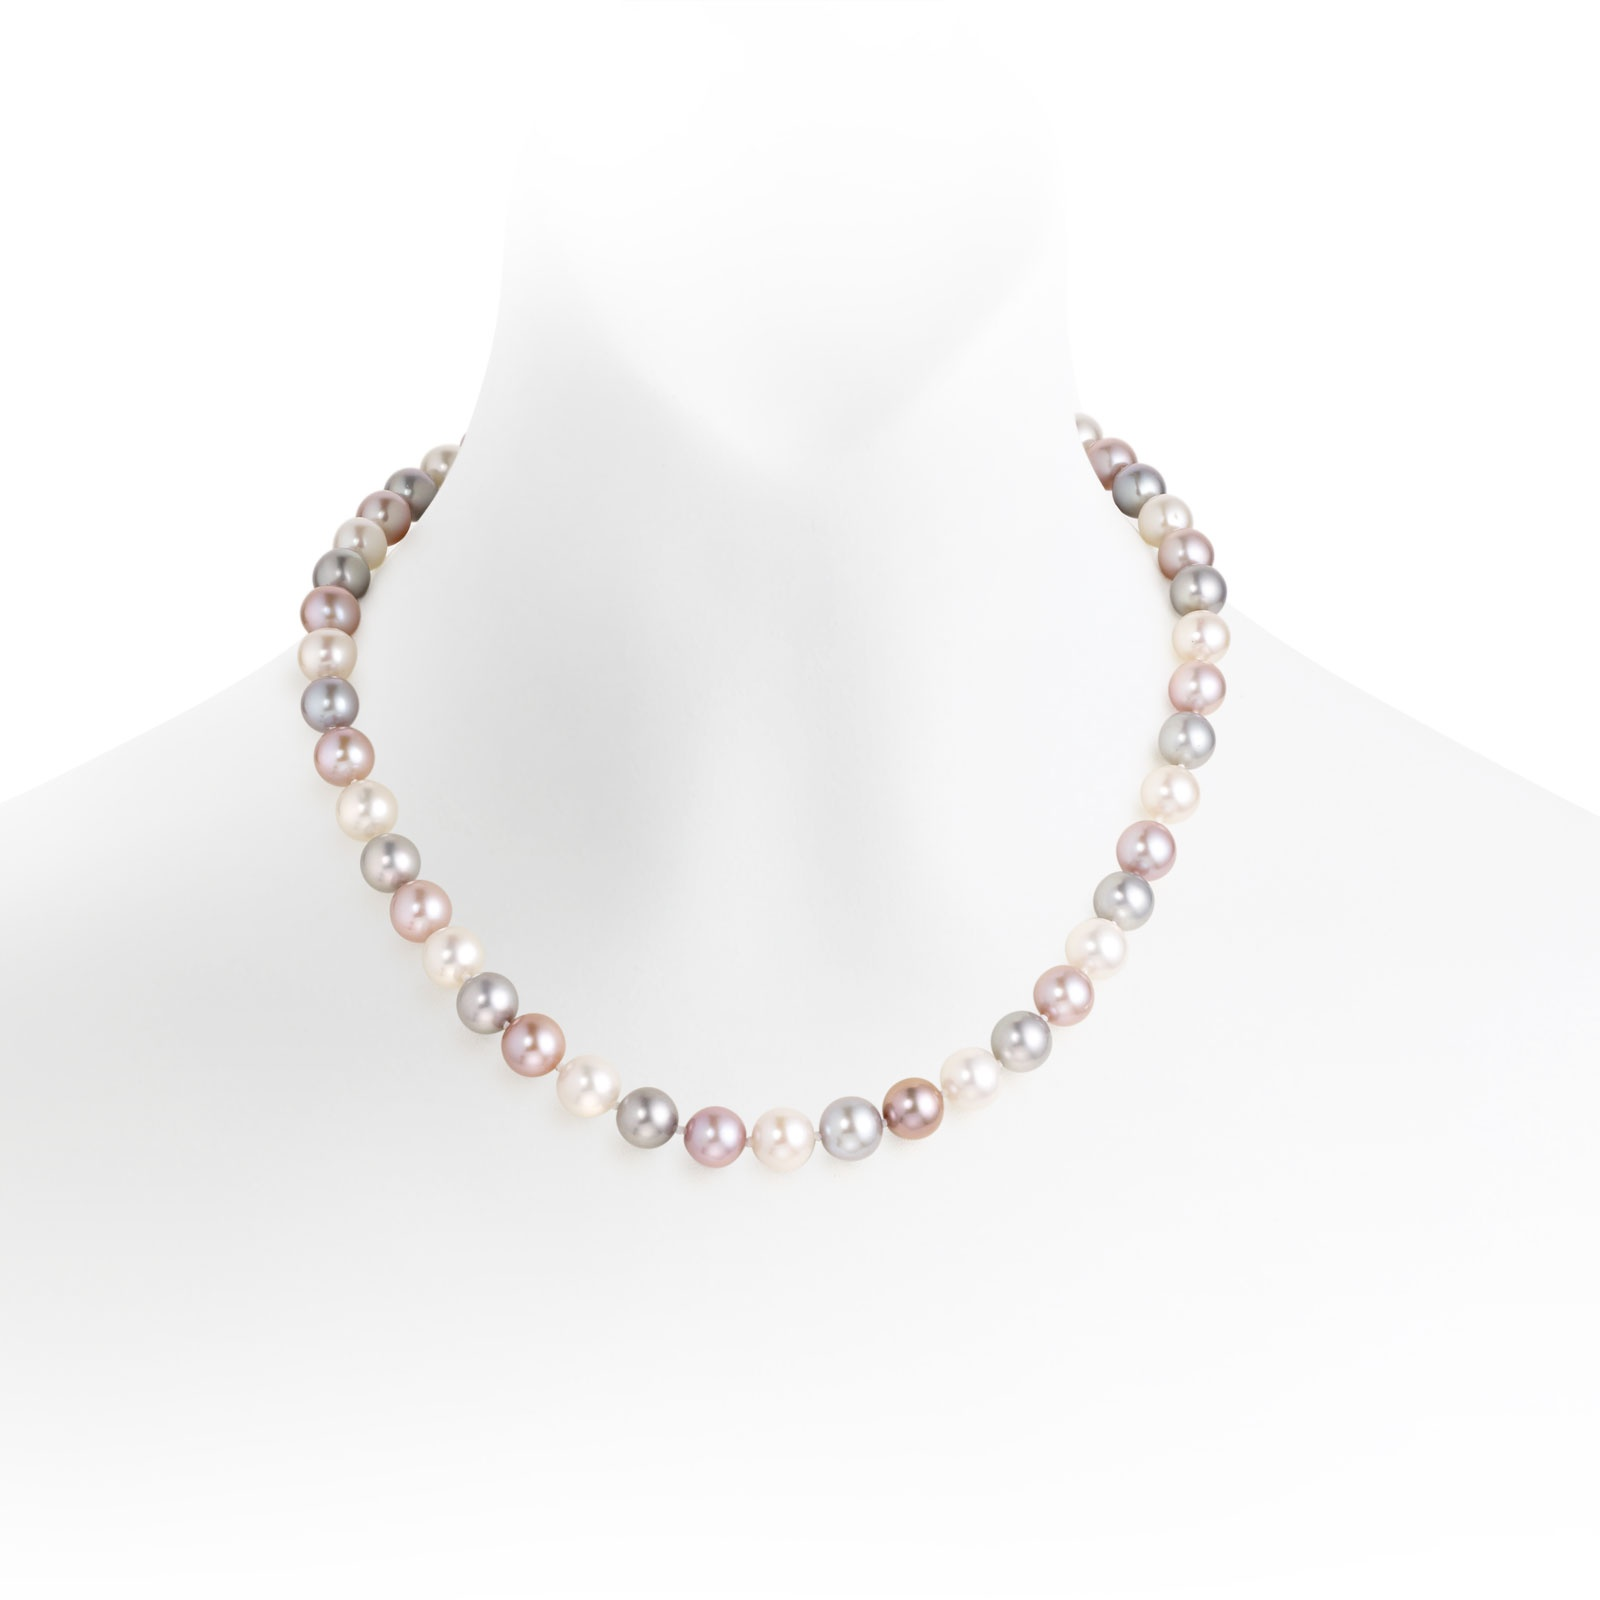 White, Pink and Grey Freshwater Pearl Necklace with Silver-FNTRSS0054-1